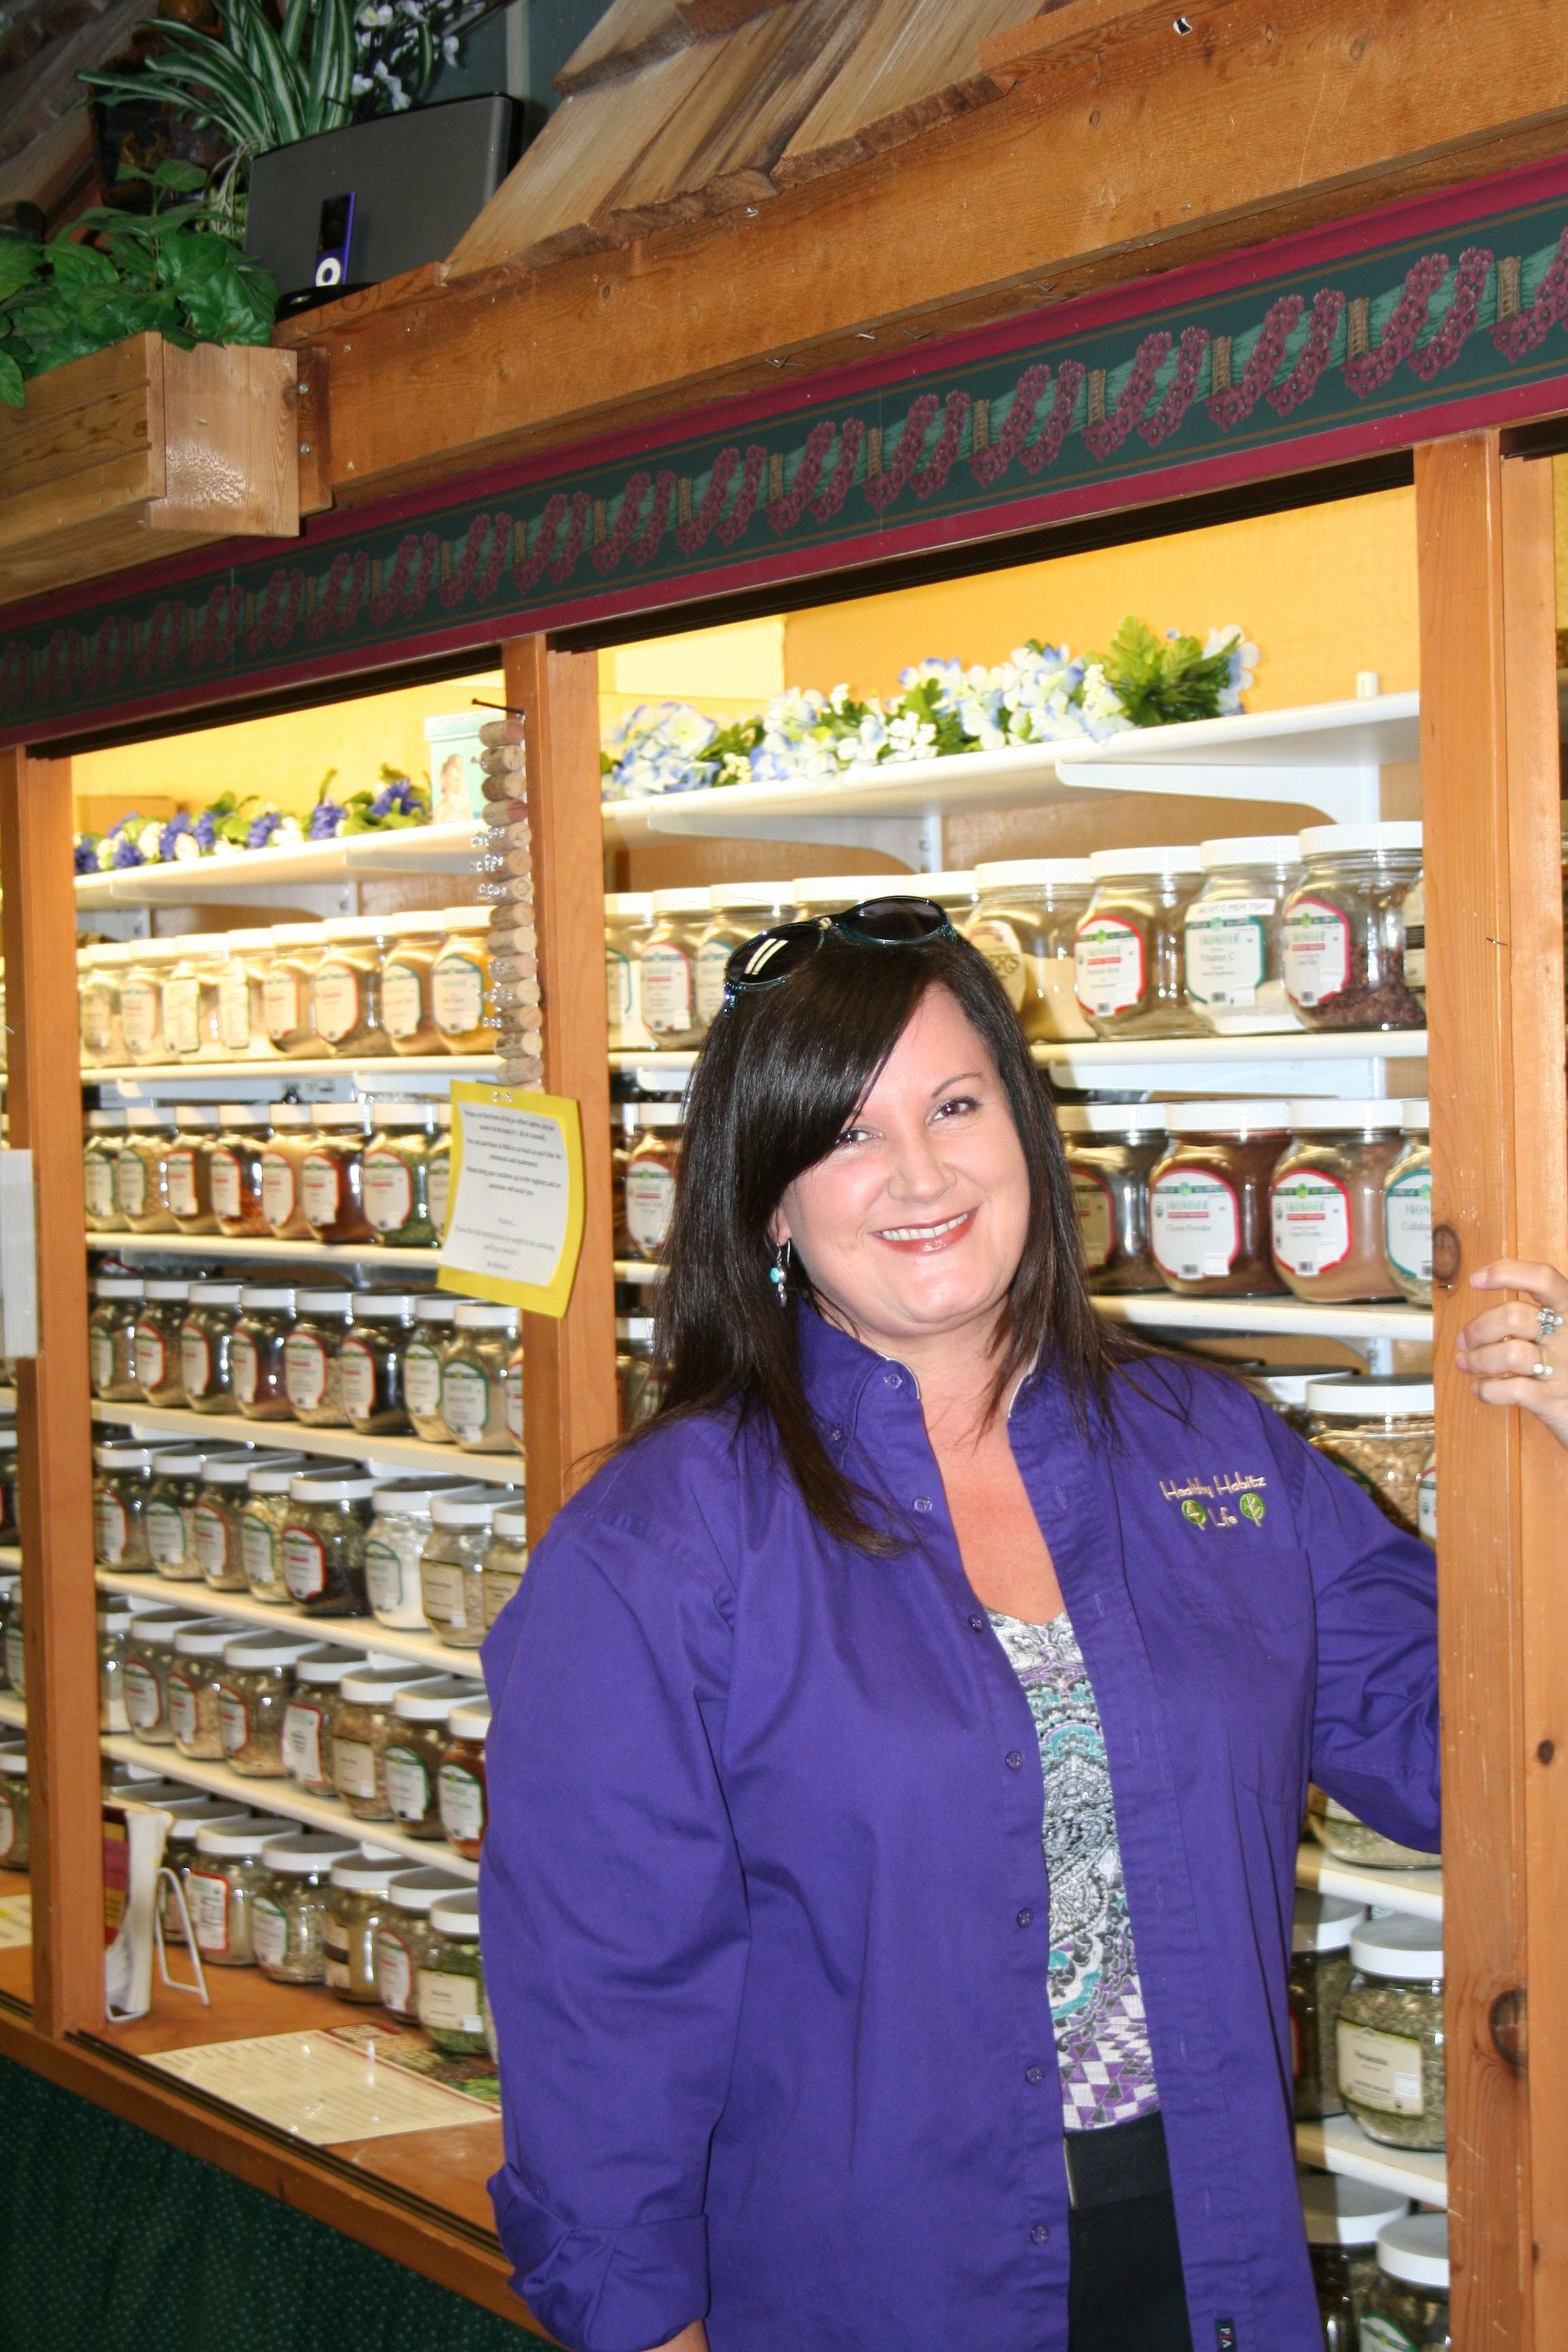 Gretchen Gill Buyer For Kitchenware Bulk Herbs Spices Teas Meet The Team Bulk Herbs The Incredibles